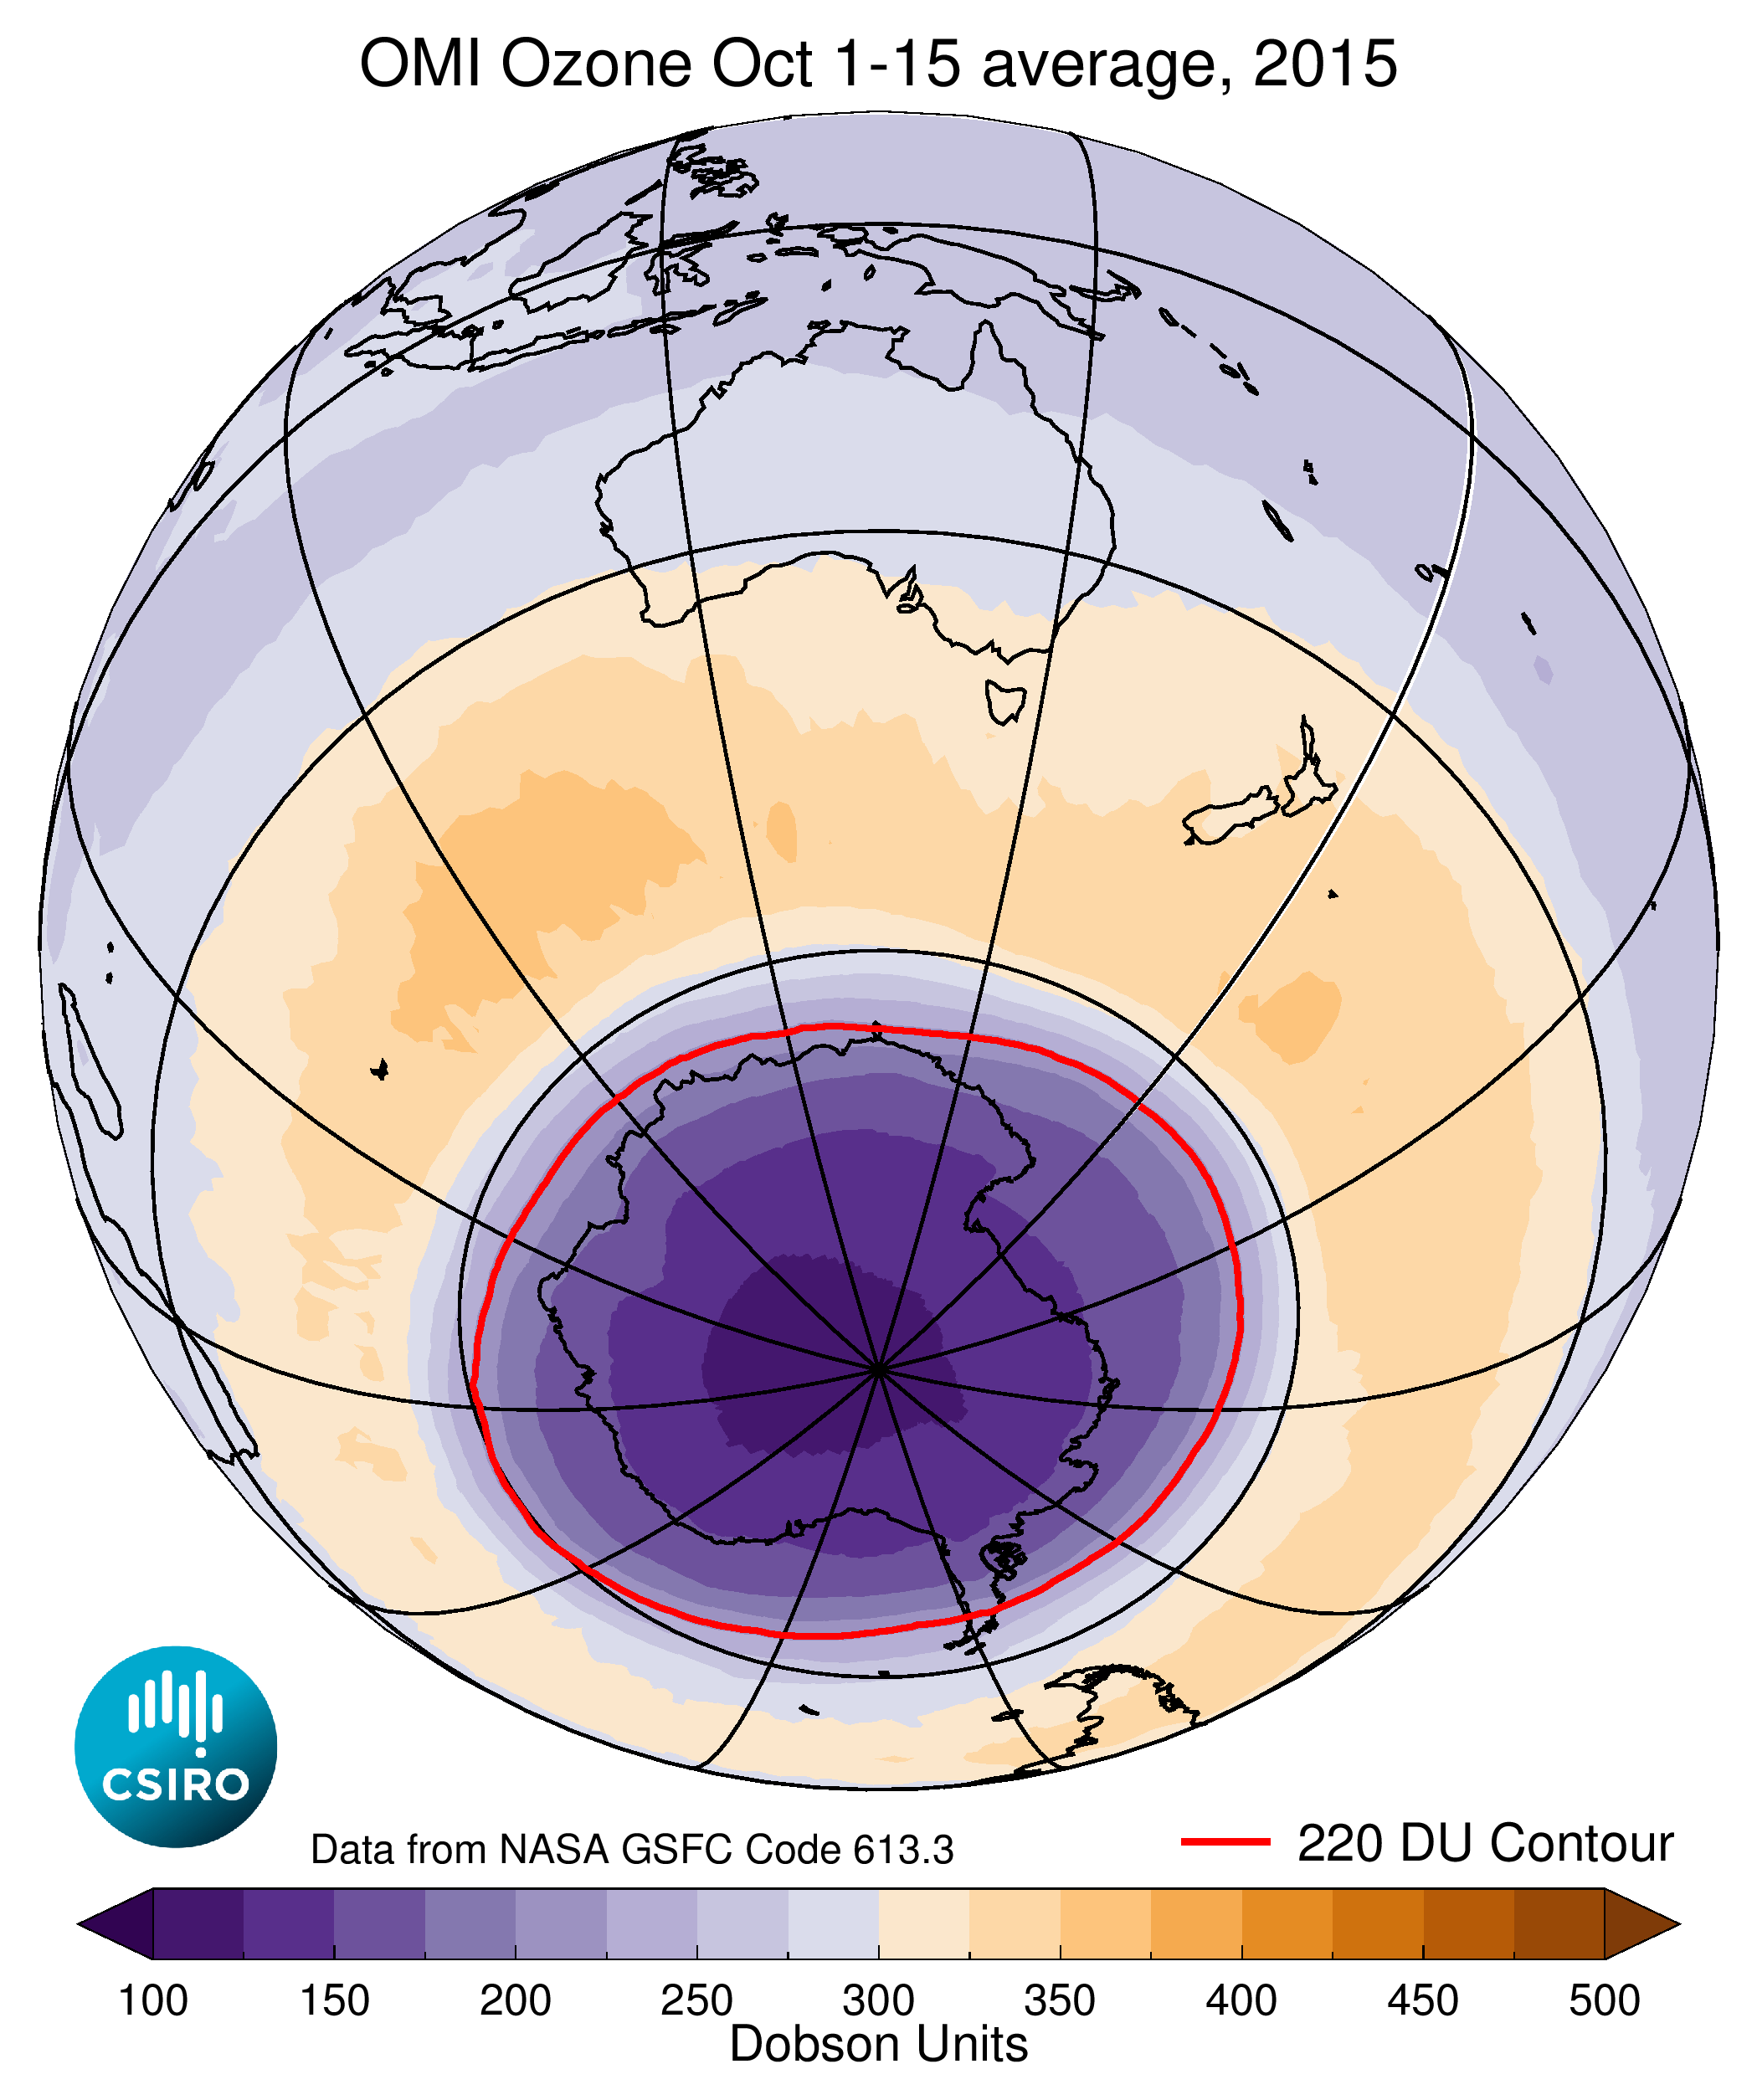 representation of Average ozone concentrations over the southern hemisphere during October 1-15, 2015